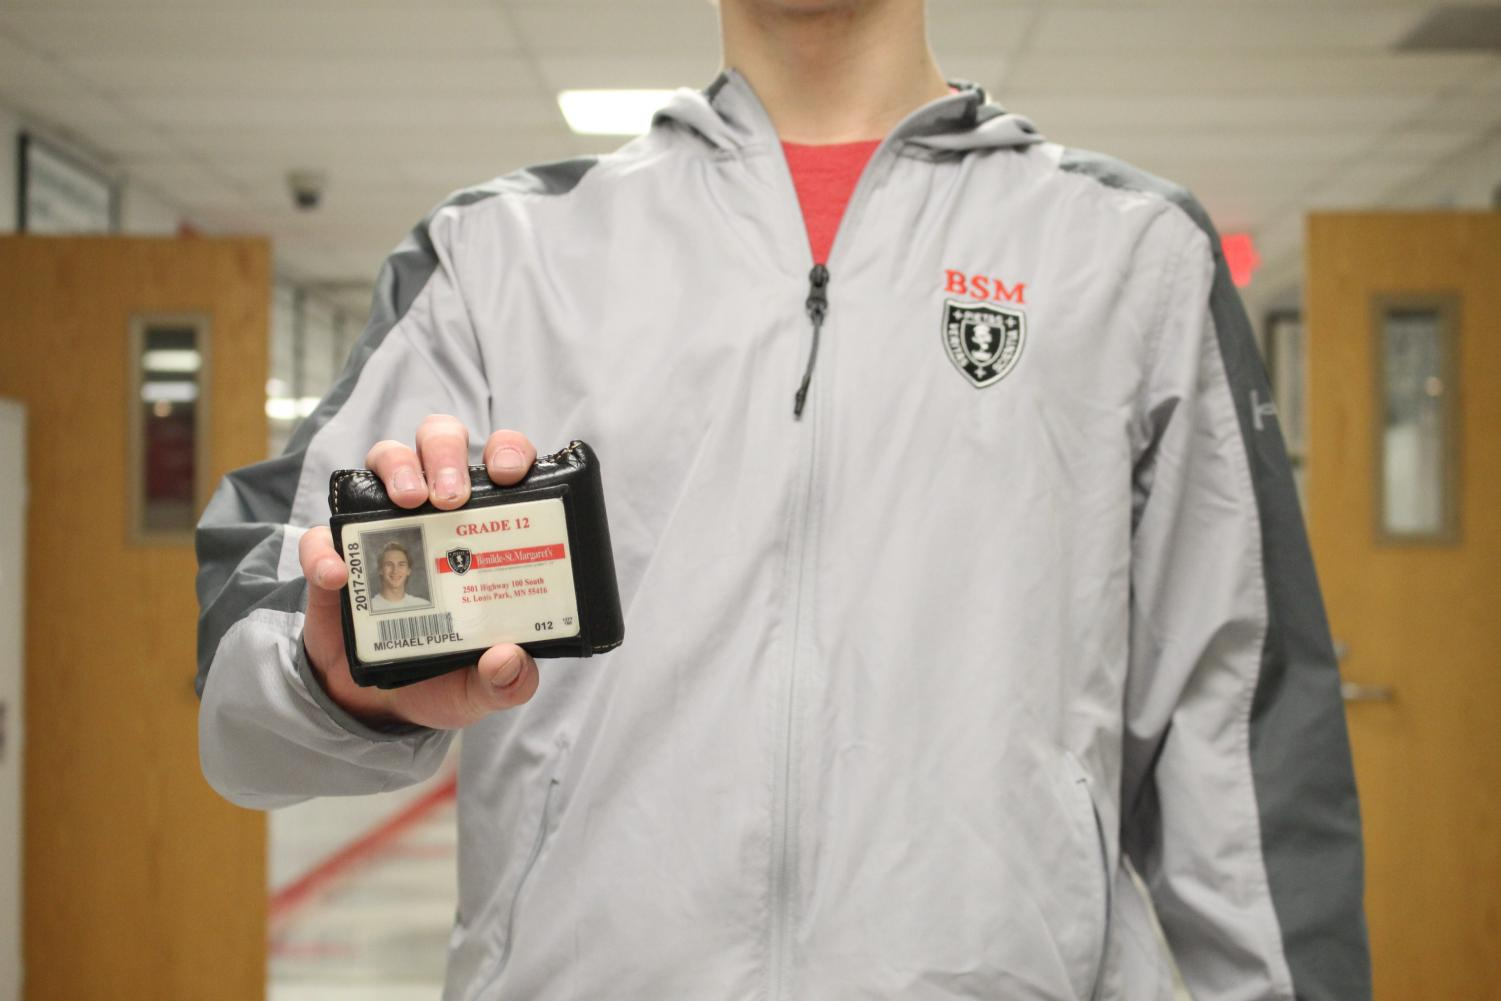 Seniors can now use their ID's instead of having to use classroom passes, as in the past.